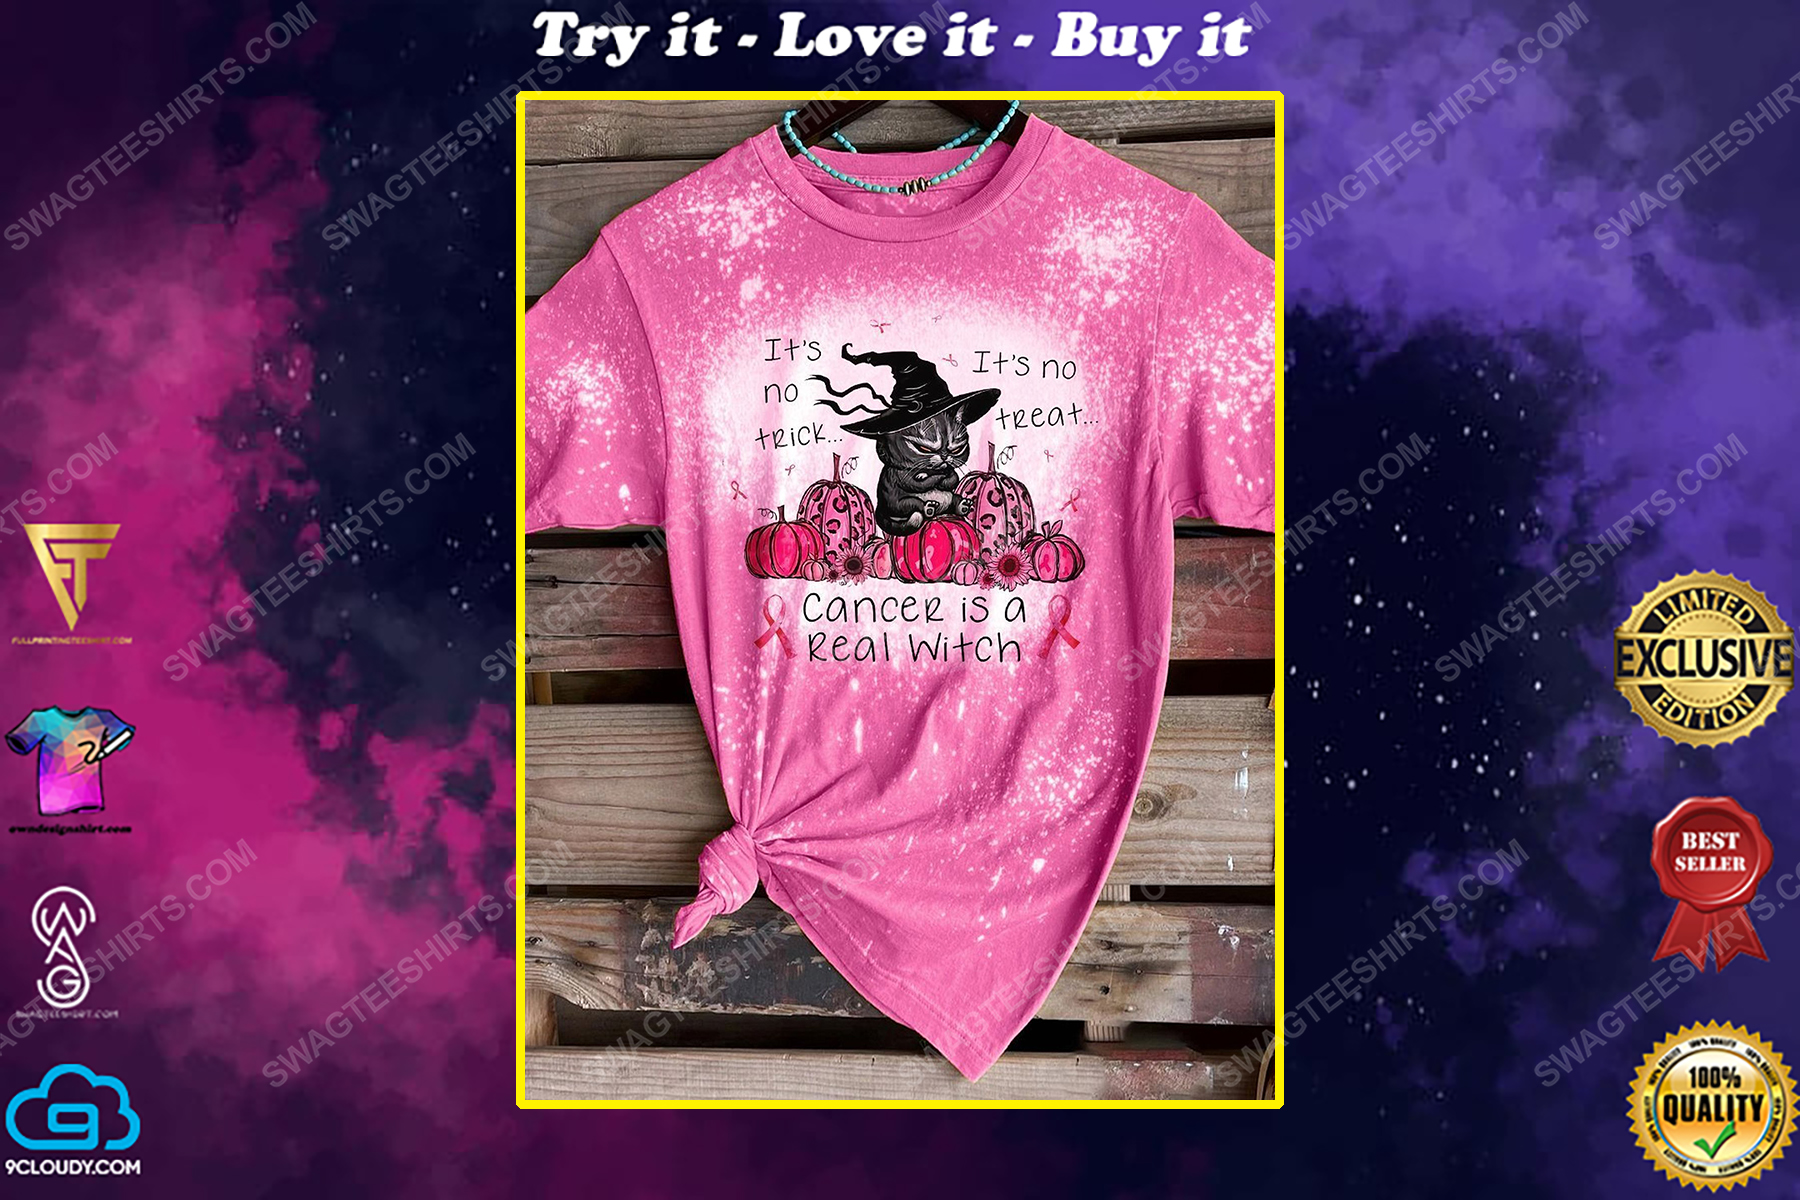 Breast cancer awareness it's no trick it's no treat cancer is a real witch bleached shirt